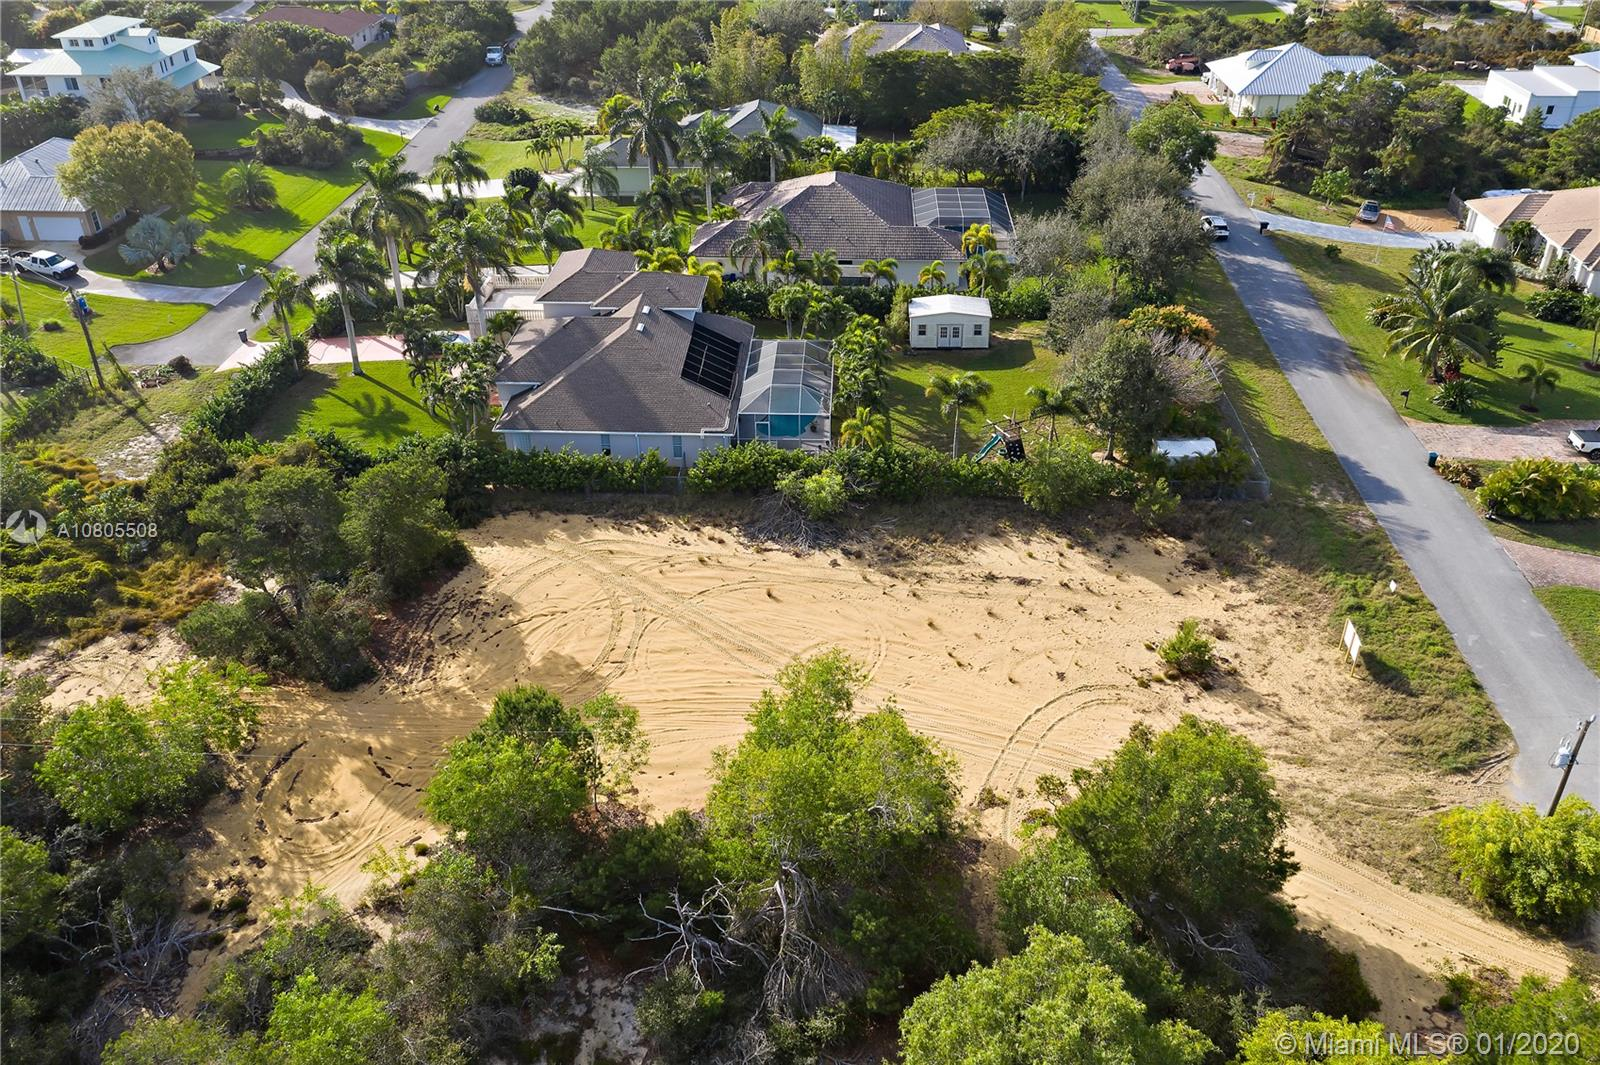 One of Hobe Sound Homes for Sale at Unassigned,Hobe Sound Guava